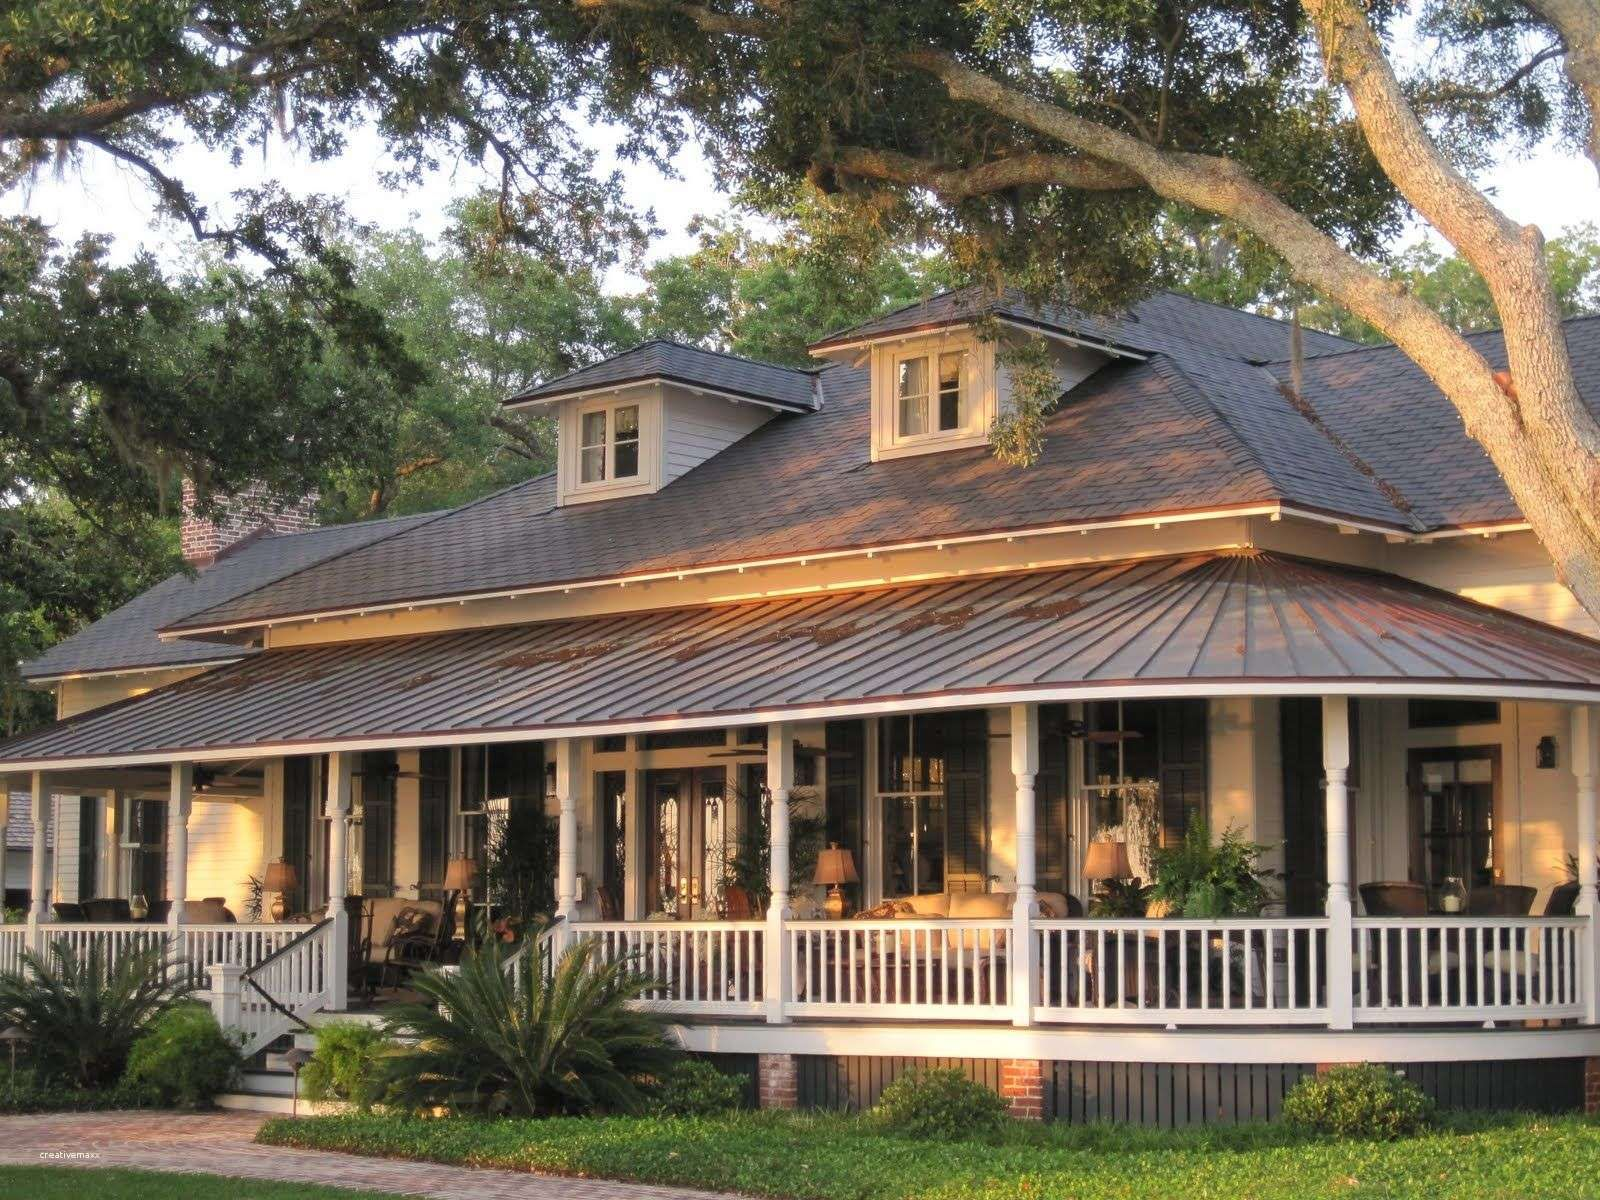 Kit Home Plans Don T Have To Be Rustic In Style In Reality After You Start To Look You Will Discover Porch House Plans House Plans Farmhouse Farmhouse House